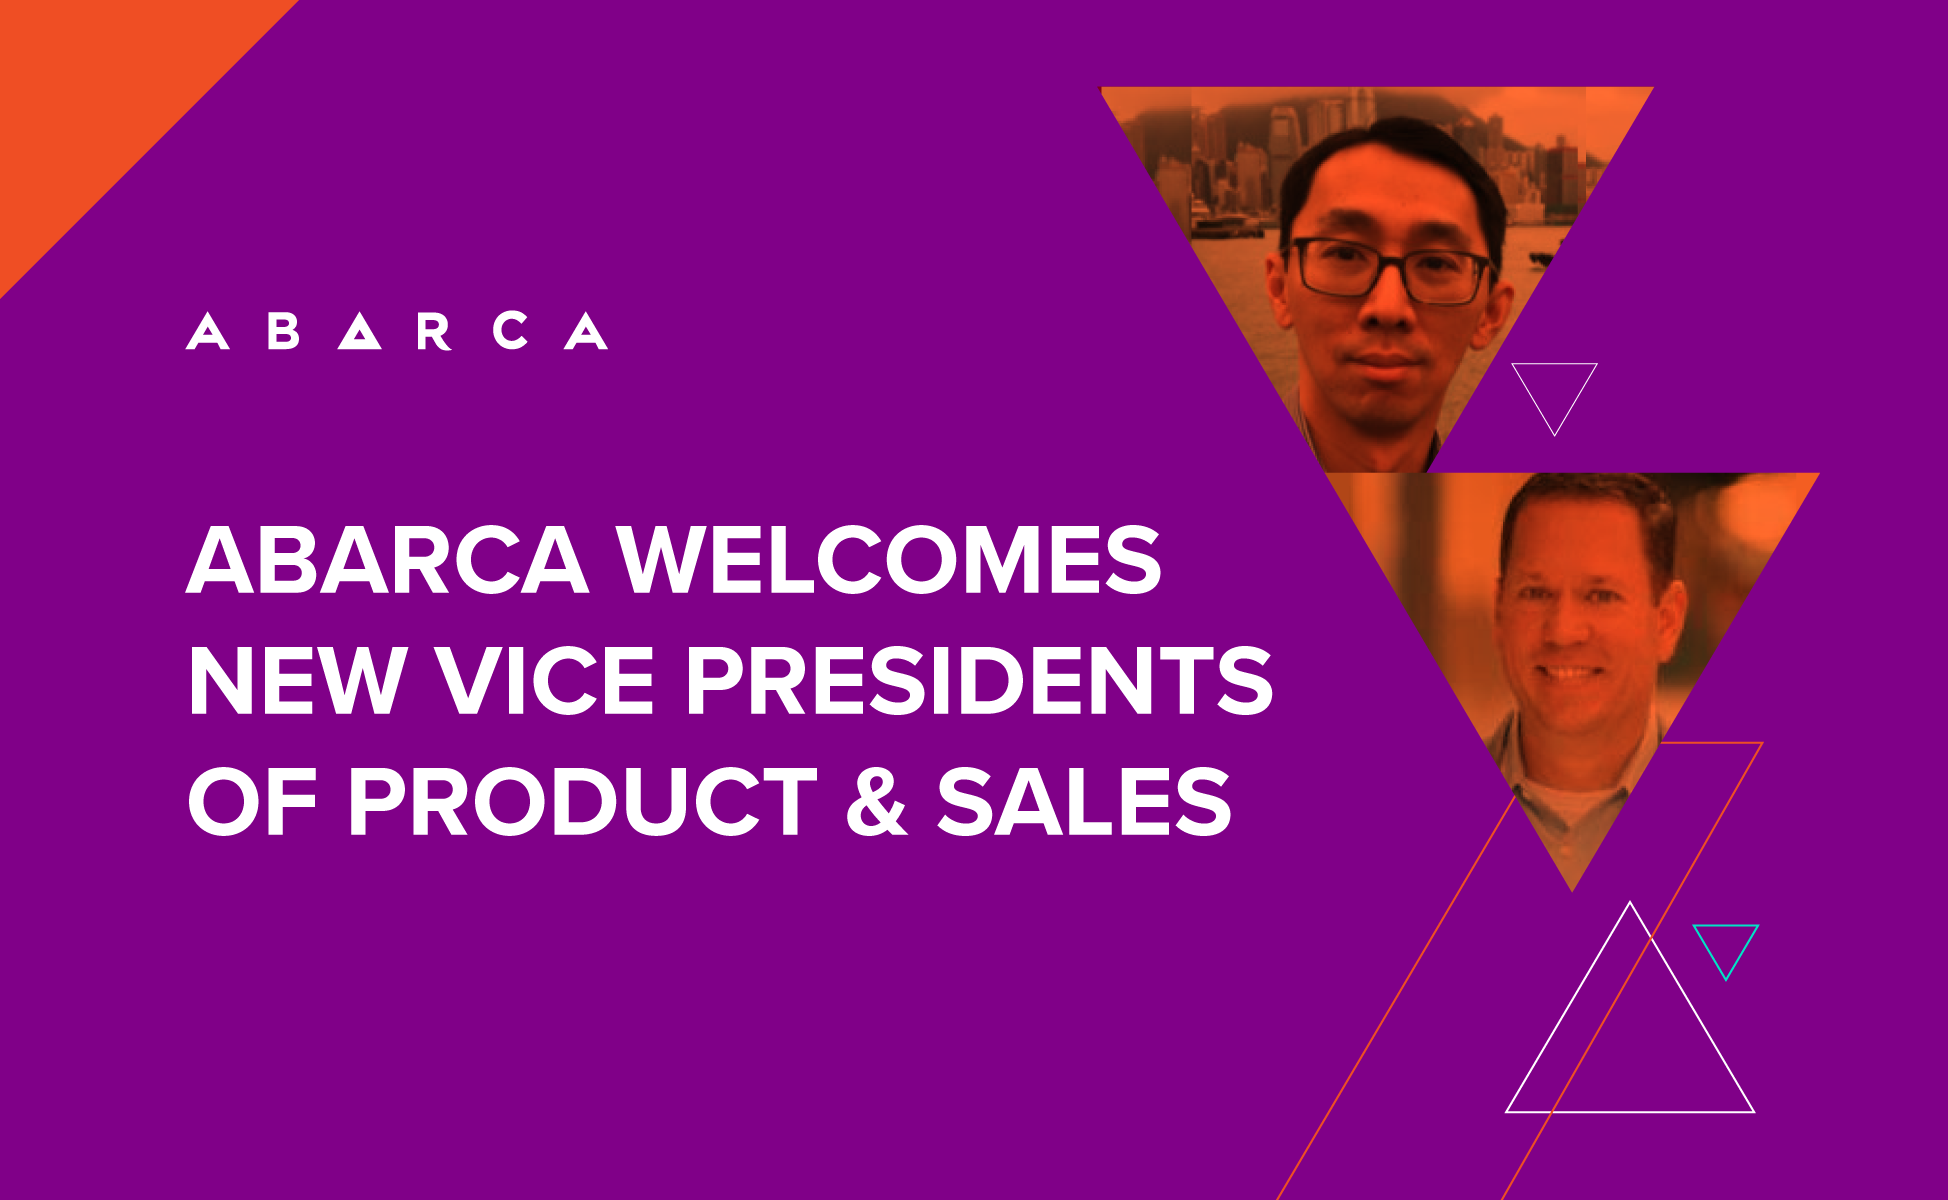 Abarca welcomes new Vice Presidents of Product and Sales: Paul Chan and Jesse Ruzicka.